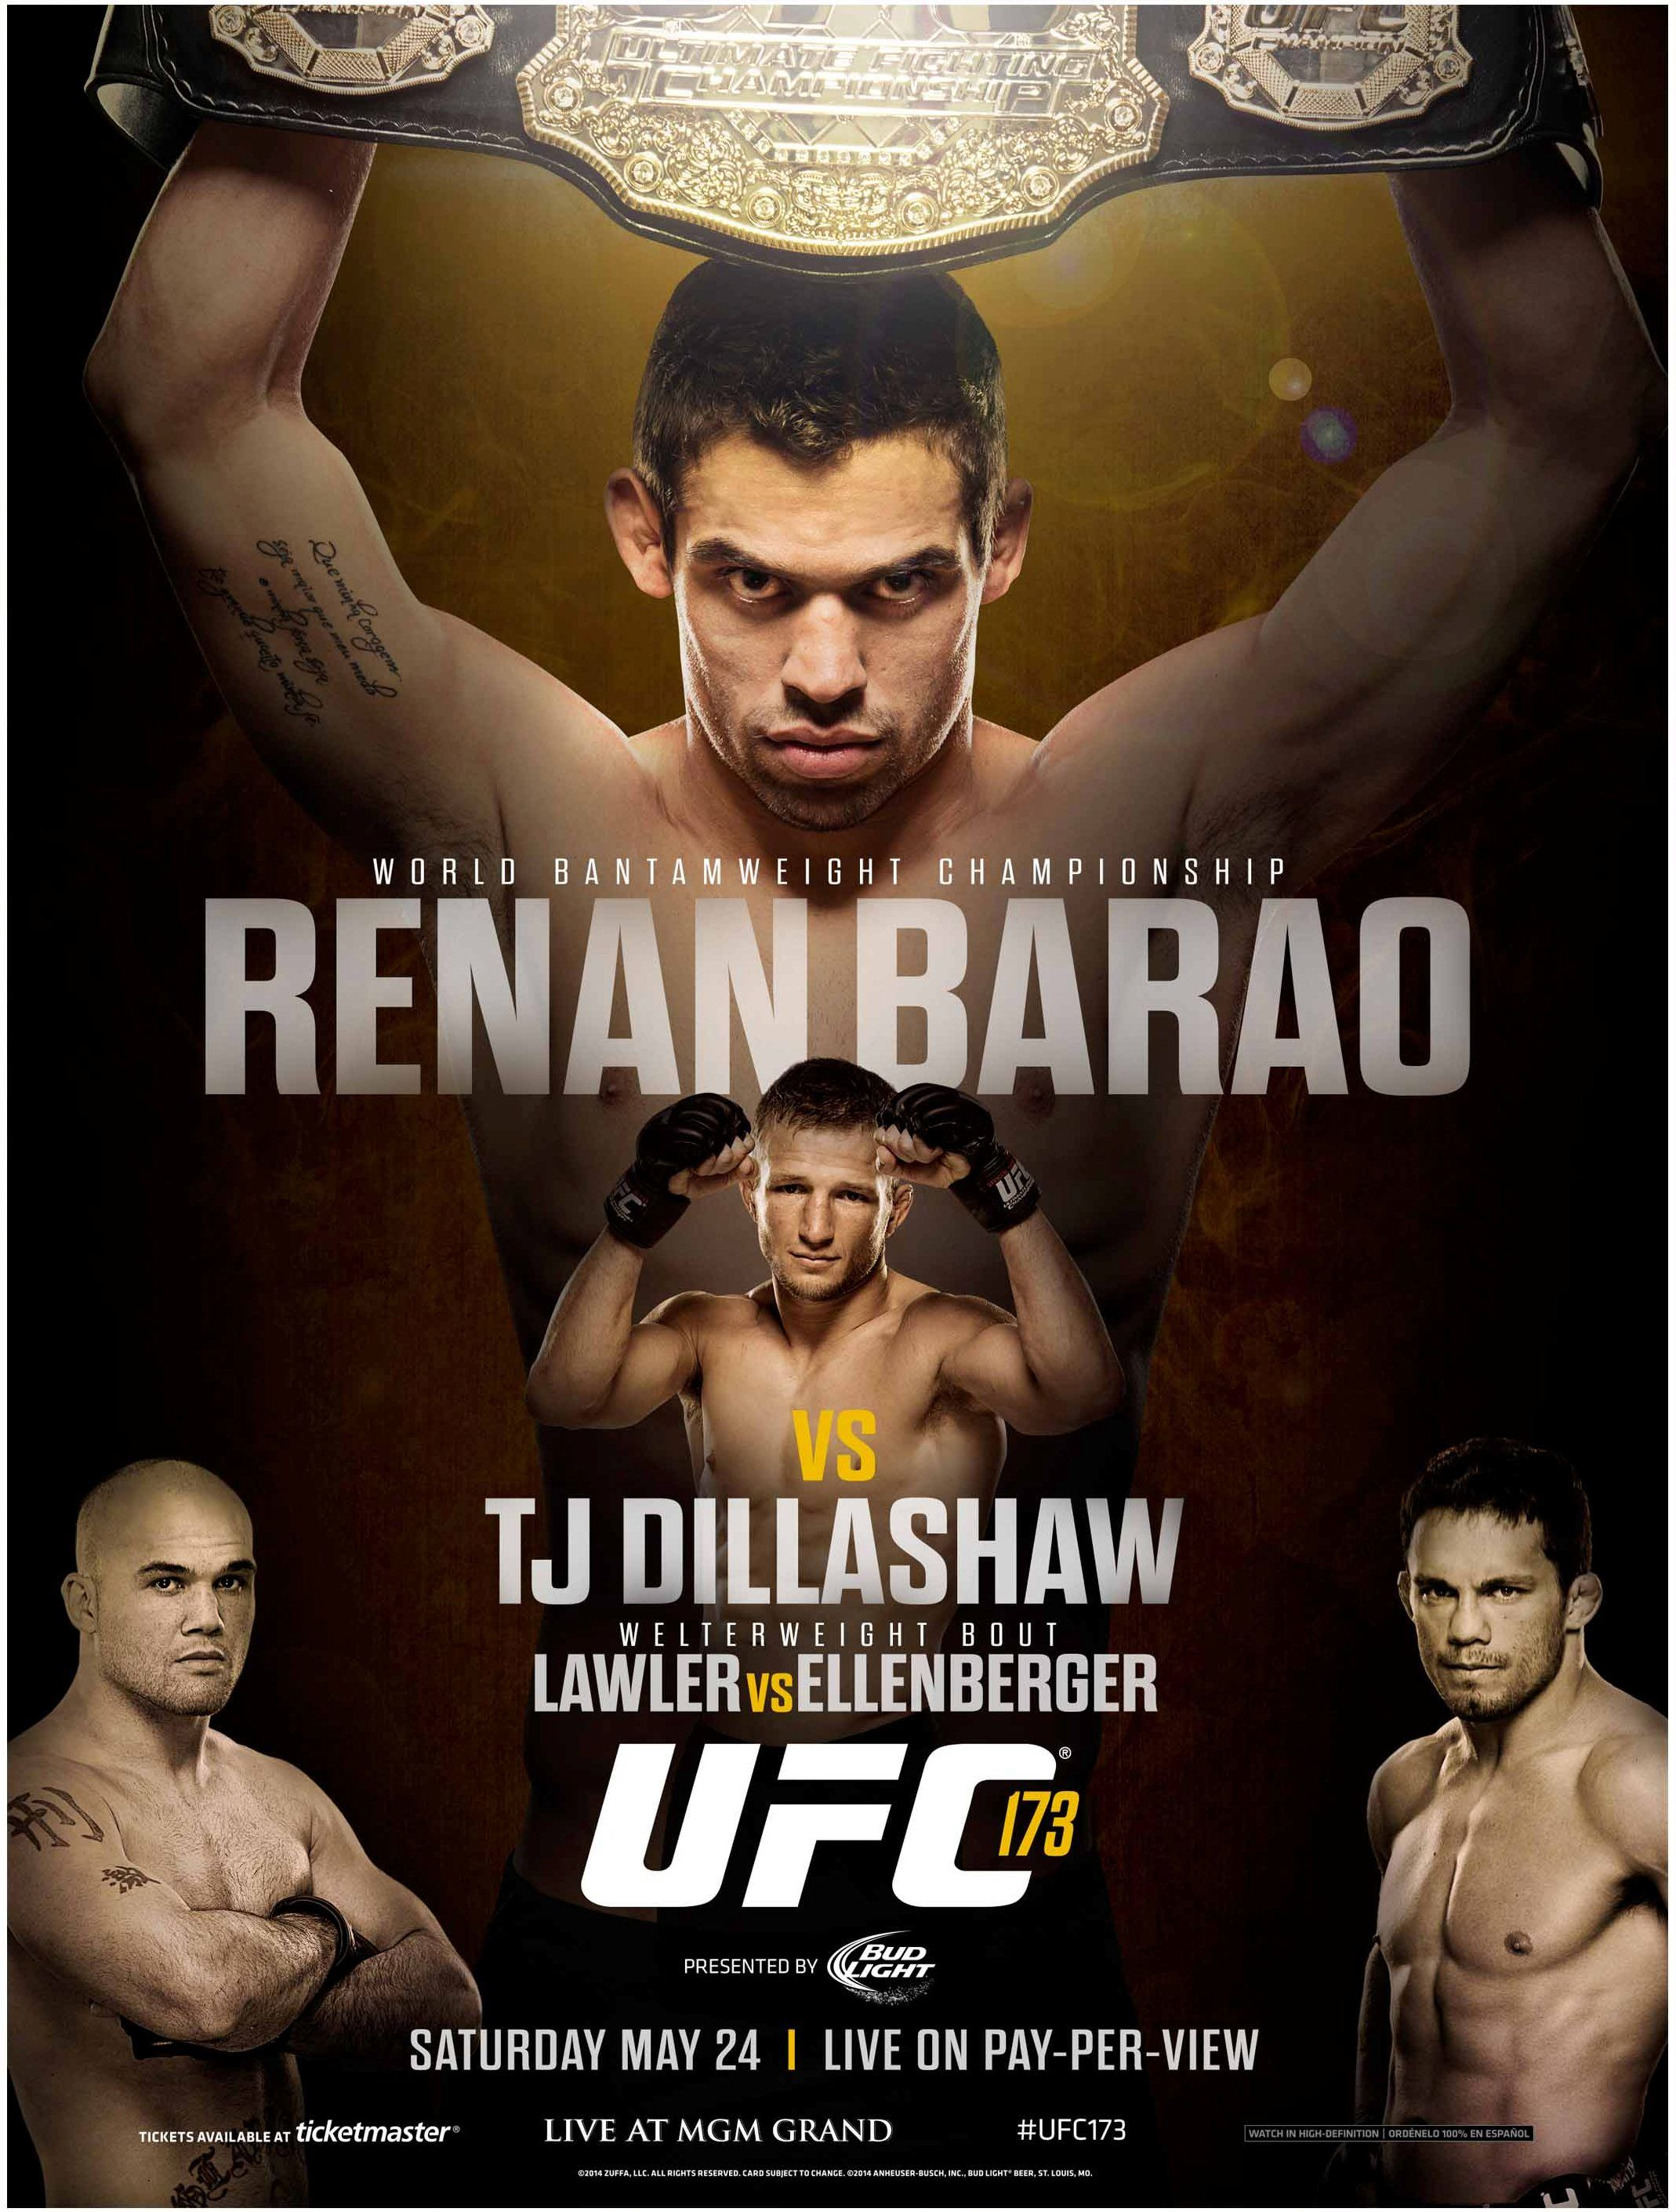 Based On The Poster You D Think The Challenger Wouldn T Stand A Chance Against Such A Domineering Champion The Beautiful Thing Ab Ufc Tj Dillashaw Ufc Poster